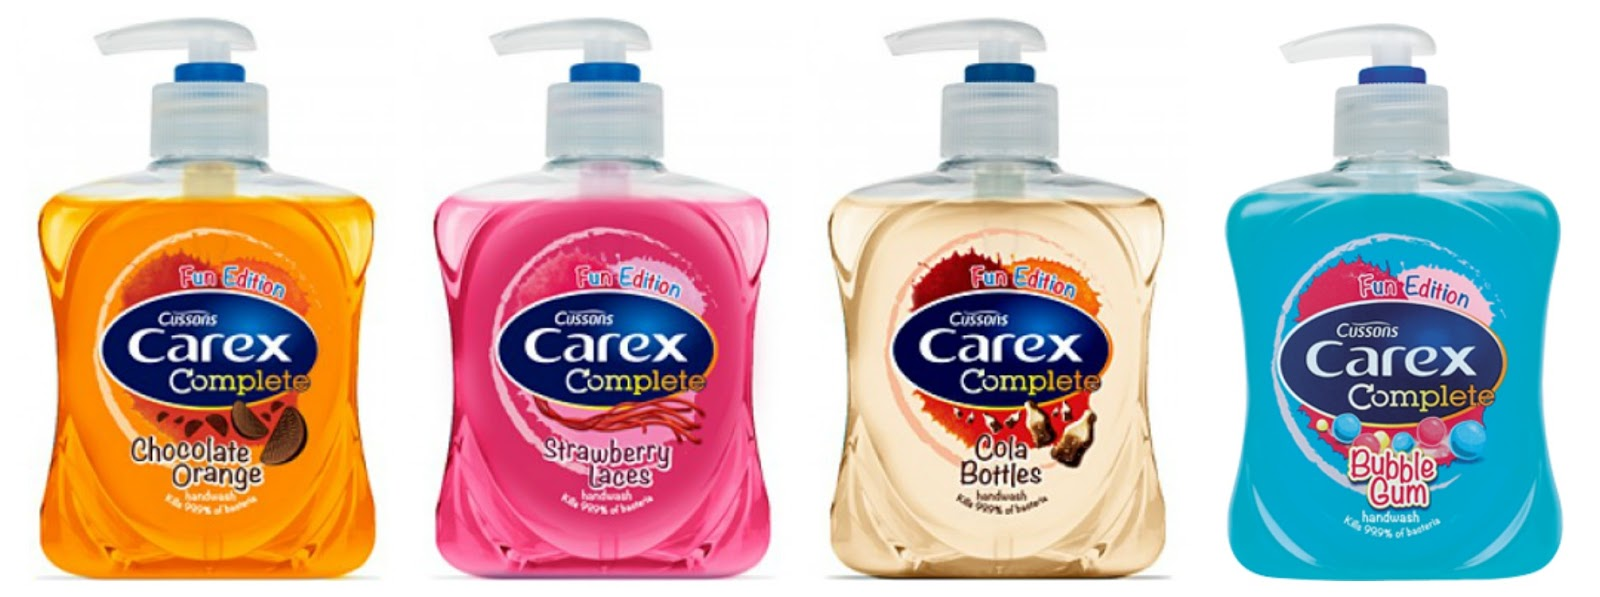 Carex Fun Edition Handwash Bubble Gum Review on Hello Terri Lowe British Beauty Blog.